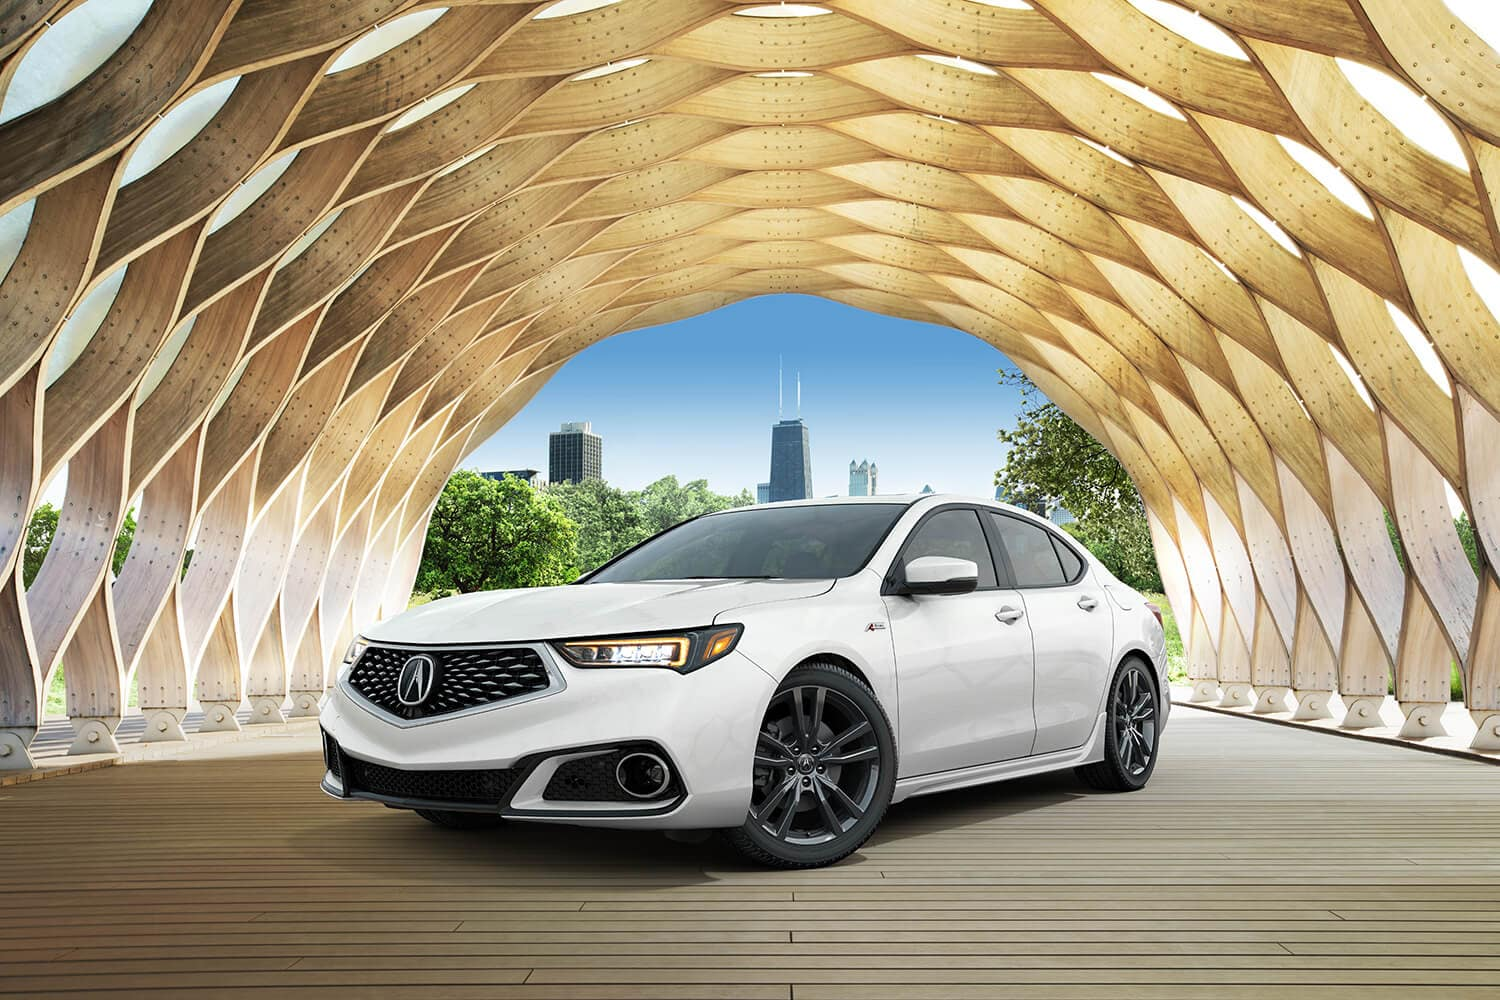 Affordable Luxury Cars >> Acura Models Boast Some Of The Most Affordable Luxury Cars